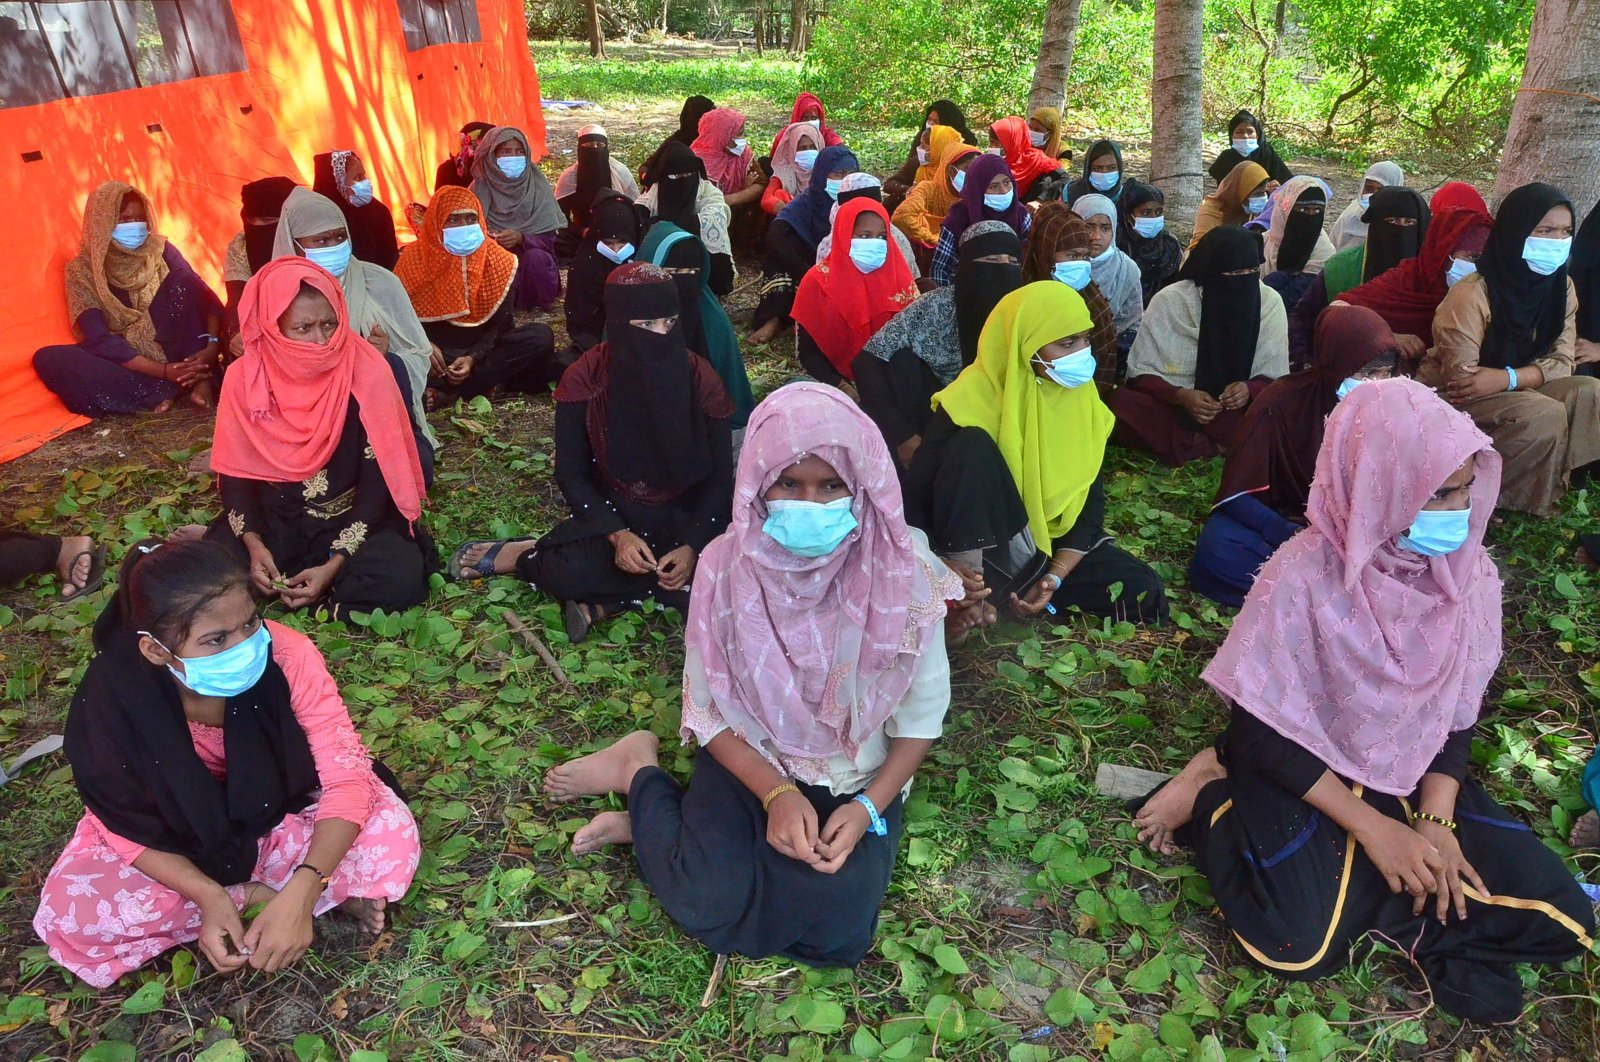 A group of Rohingya refugees, mostly women and children, gather on Pulau Idaman, a small island just off the coast of East Aceh, in northern Sumatra on June 6, 2021, after a group of 81 refugees landed on June 4, in the latest wave of Rohingya arrivals. (AFP Photo)